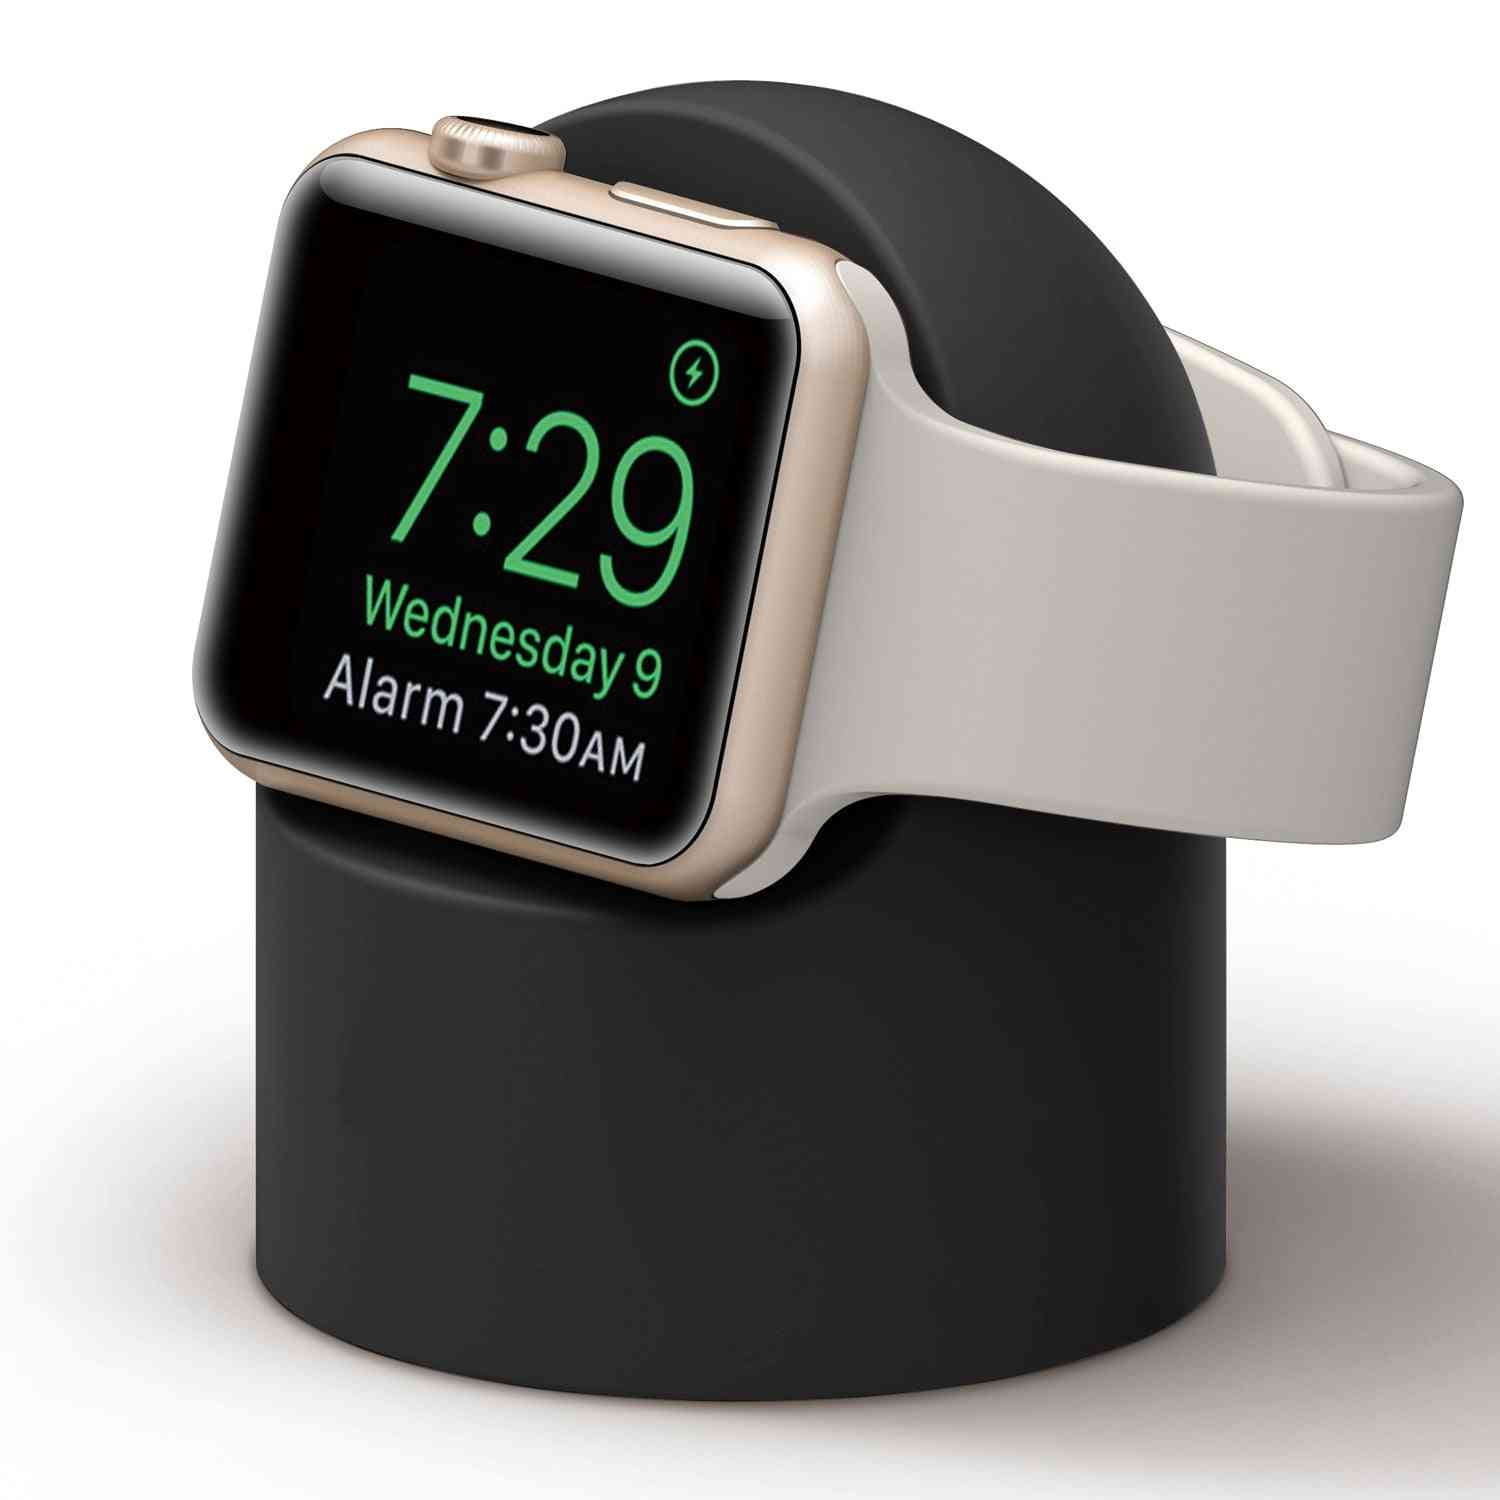 Mling Stand Apple Watch  Cable Management For Iwatch